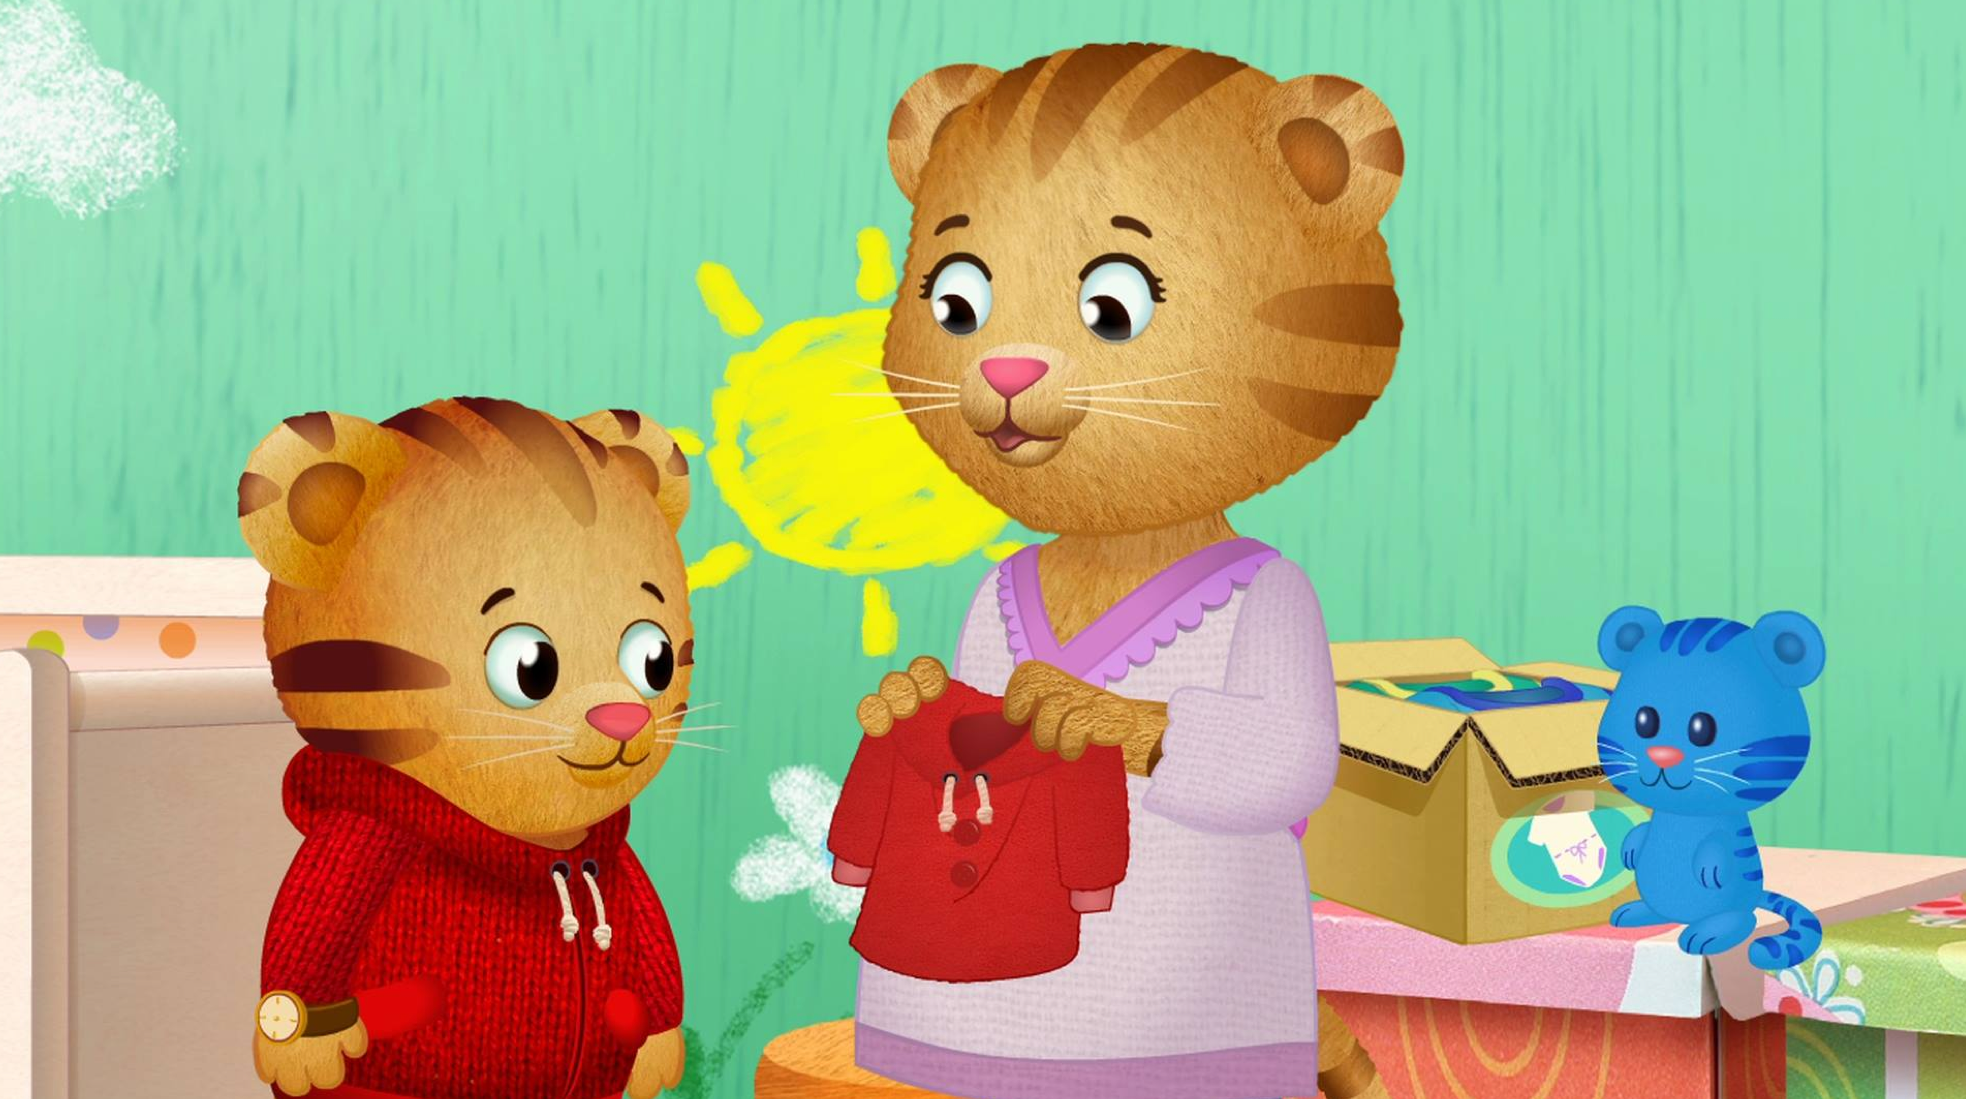 Daniel Tiger's Neighborhood - Angela Santomero